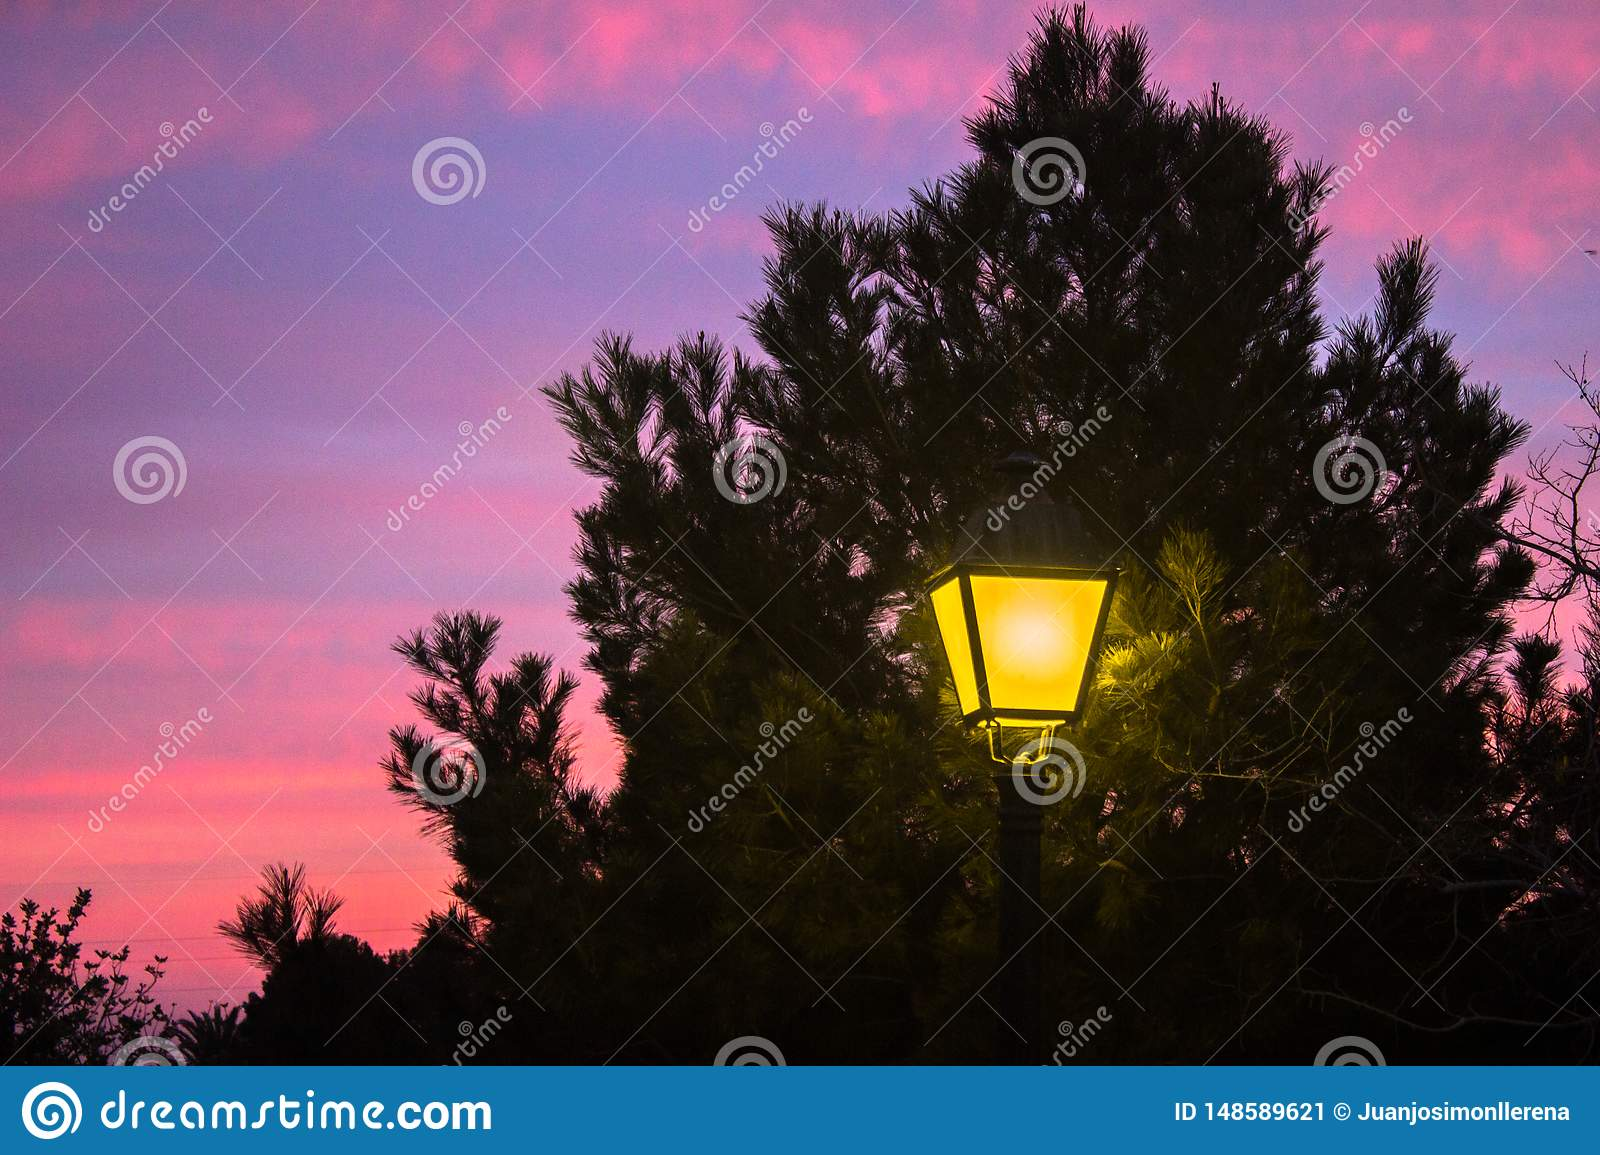 Streetlight shining under a tree